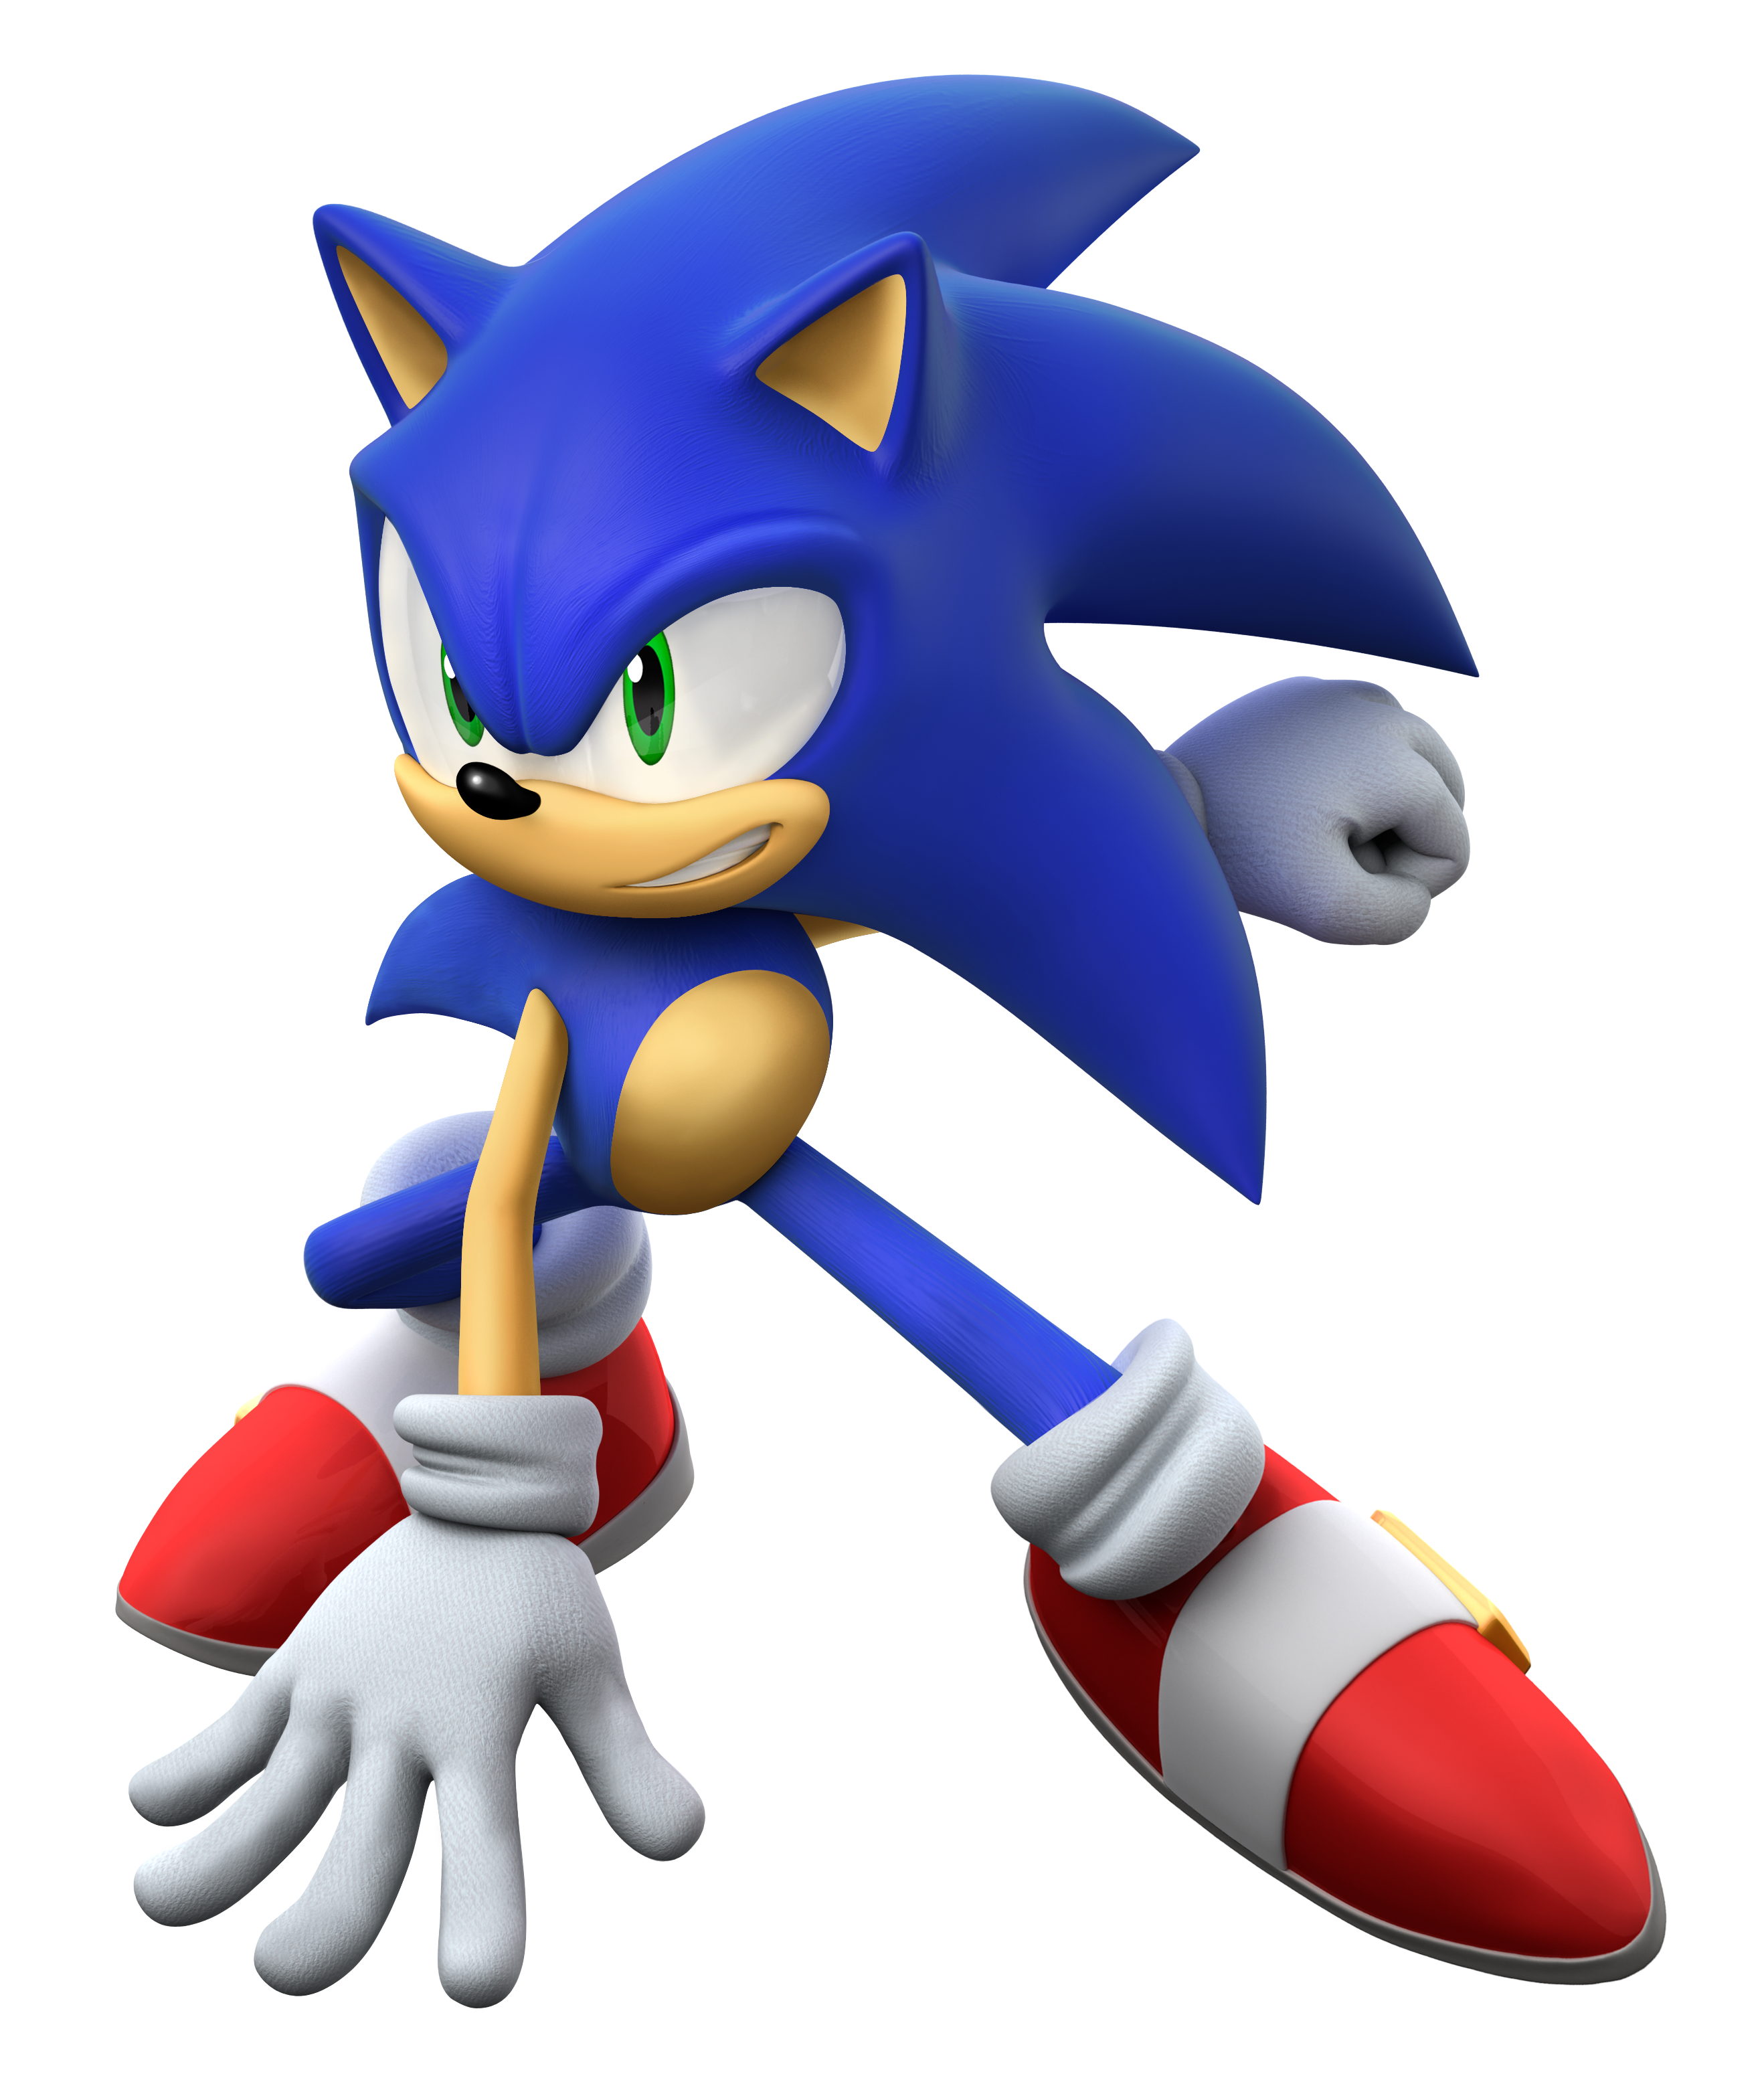 Sonic_The_Hedgehog_Wallpaper_by_Prowermaster.png